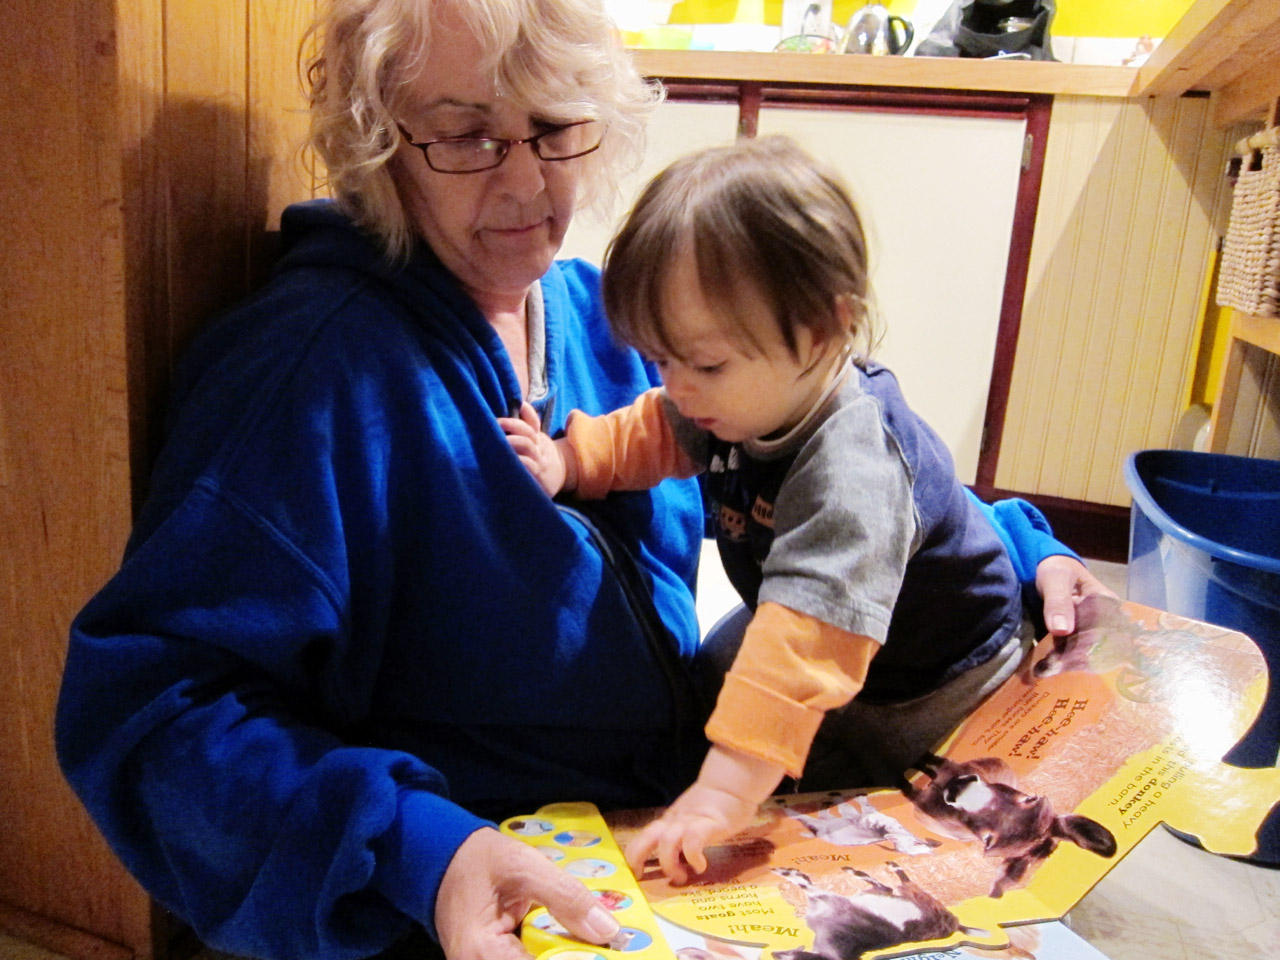 Nana and Boo reading on the floor